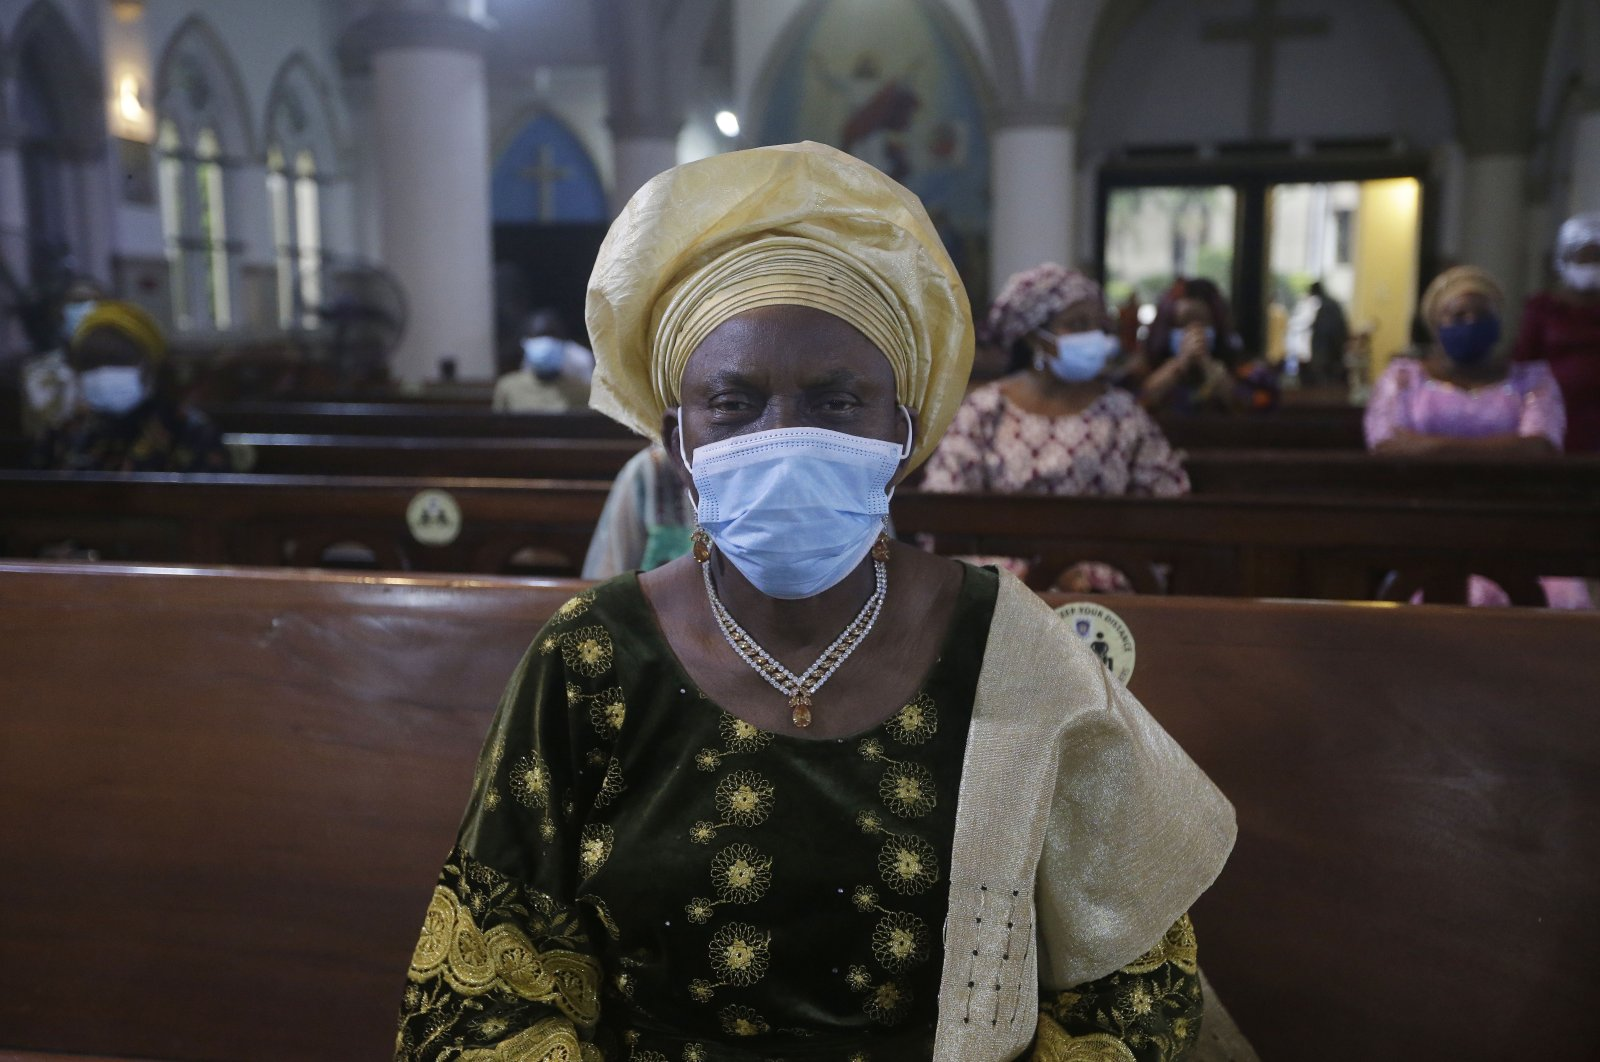 A parishioner wearing face mask to protect against coronavirus, attends a morning Christmas Mass at Holy Cross Cathedral in Lagos, Nigeria, Friday Dec. 25, 2020. (AP Photo)